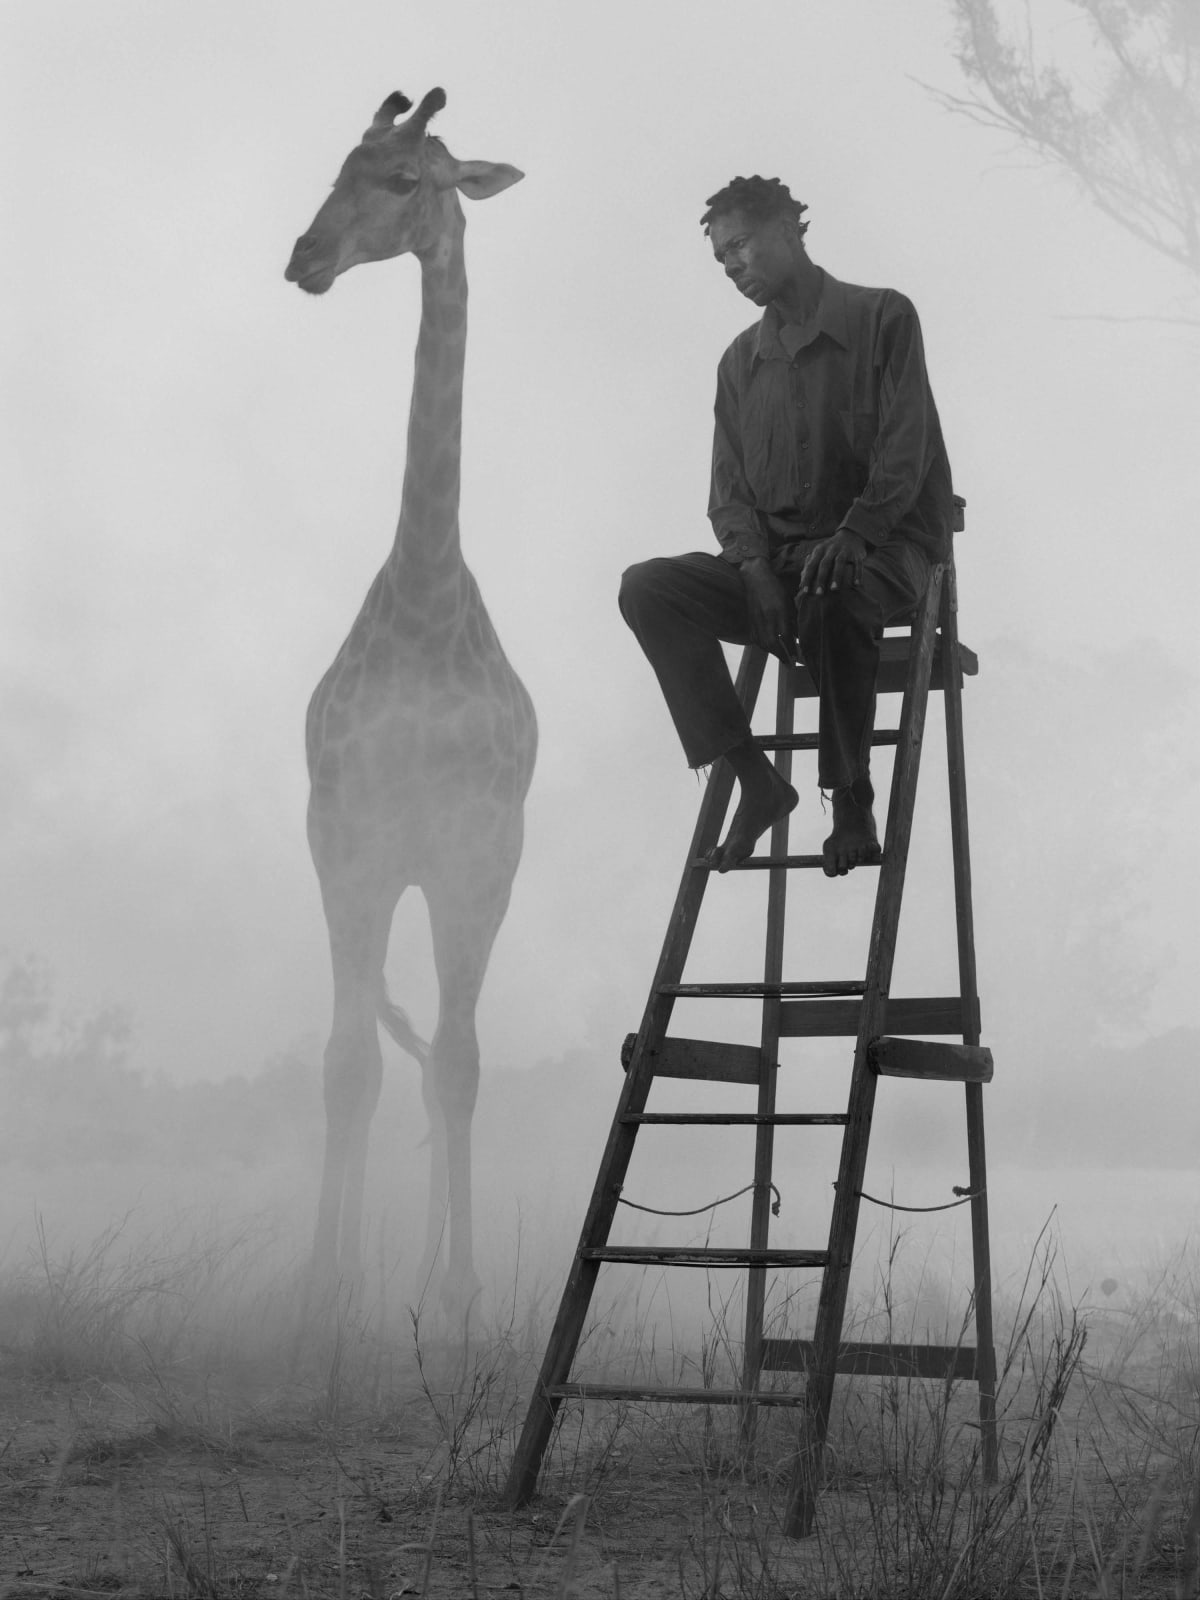 Richard sitting on ladder and a giraffe named Sky in fog, Zimbabwe, from the Day May Break series by Nick Brandt